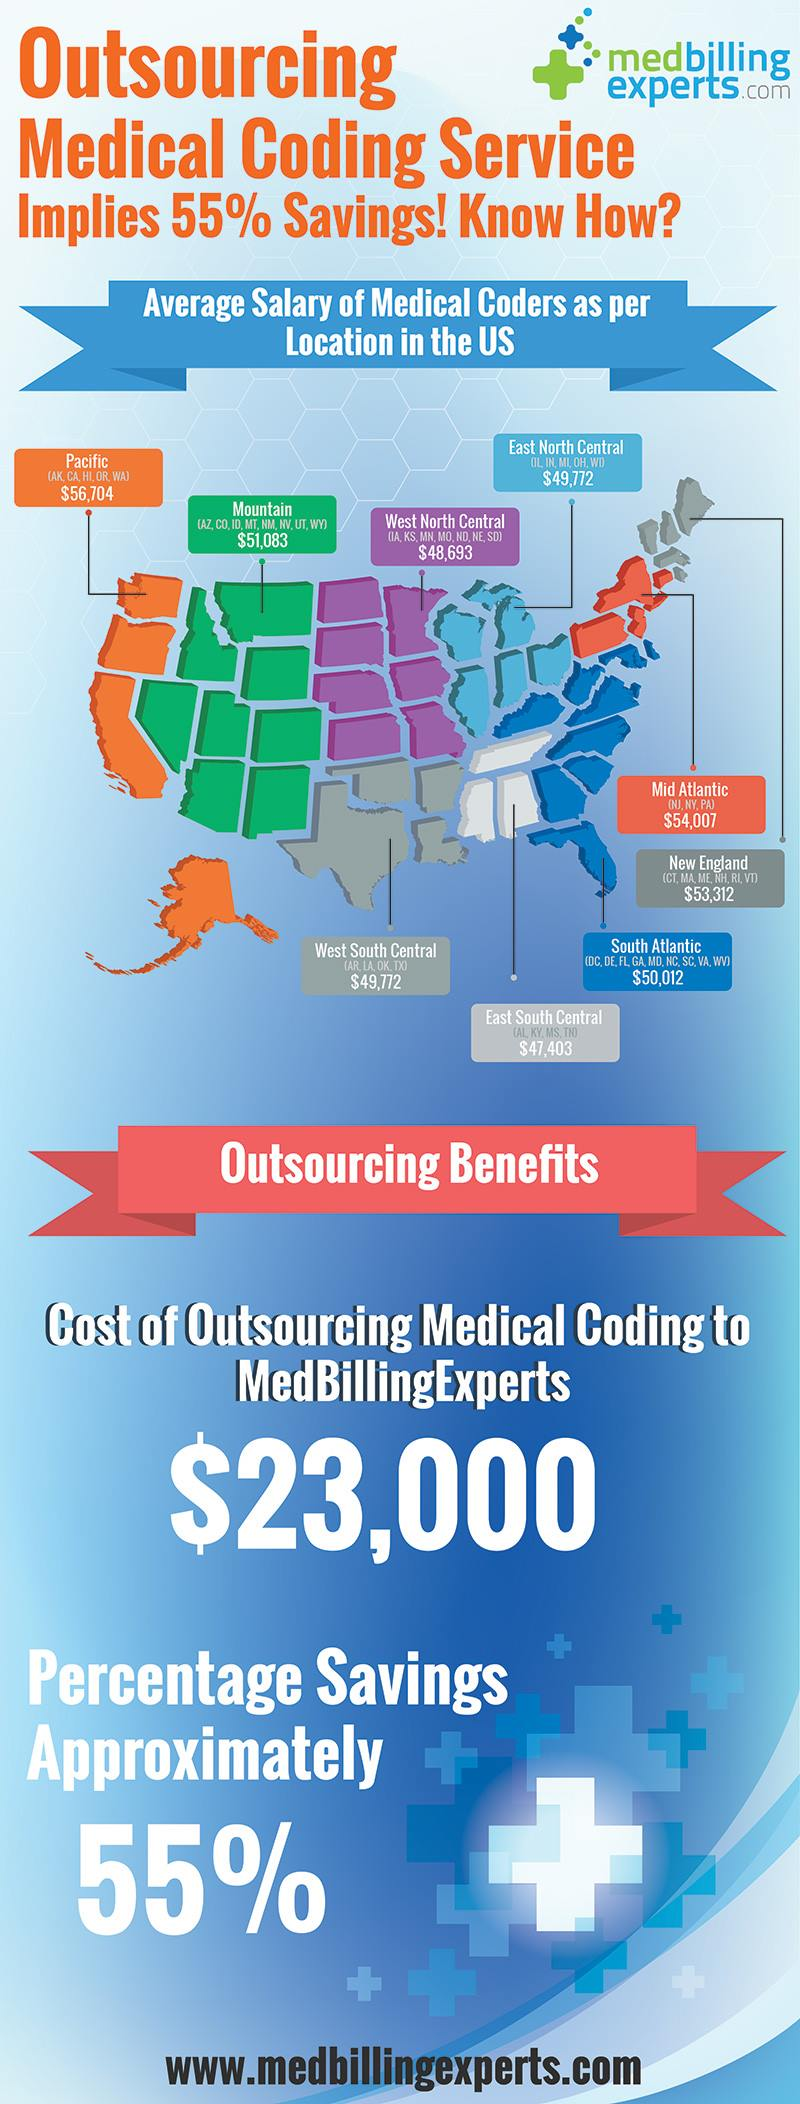 Outsourcing Medical Coding Services